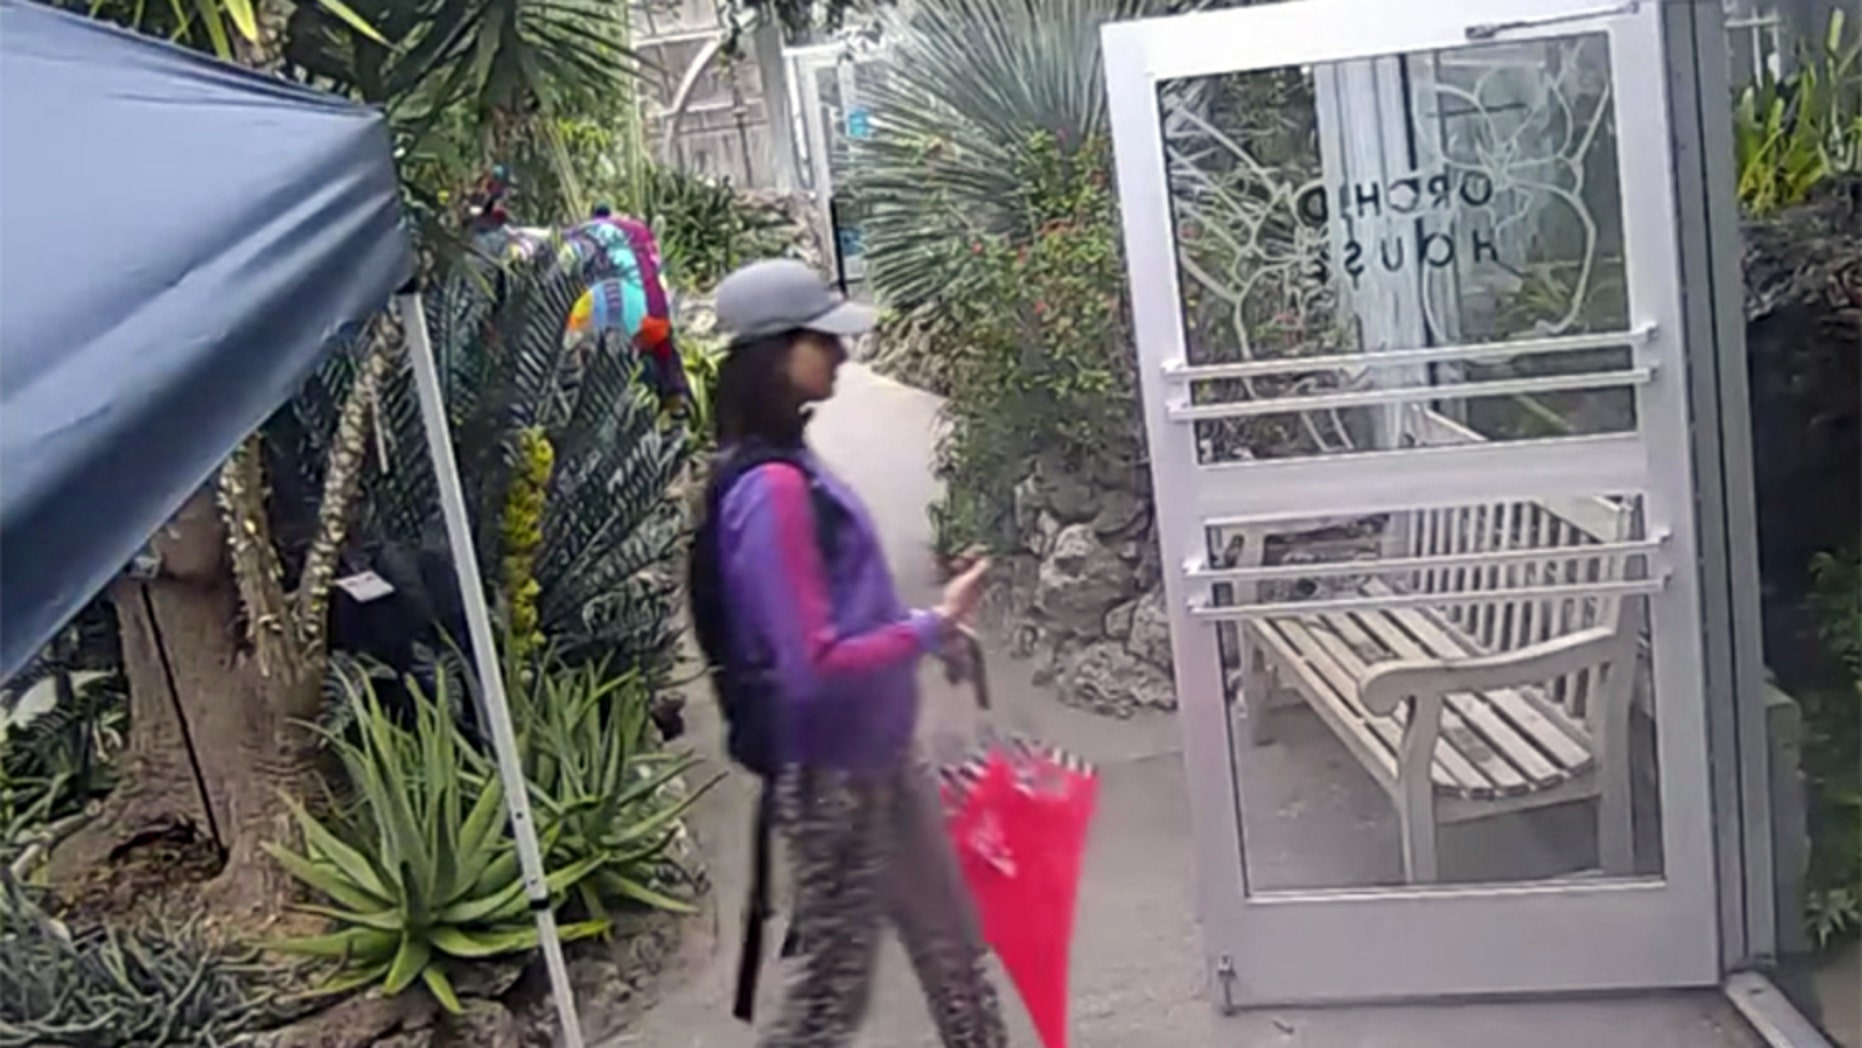 Police in Cincinnati are looking for this woman who they say was caught on video surveillance stealing a rare butterfly from the Krohn Conservatory.